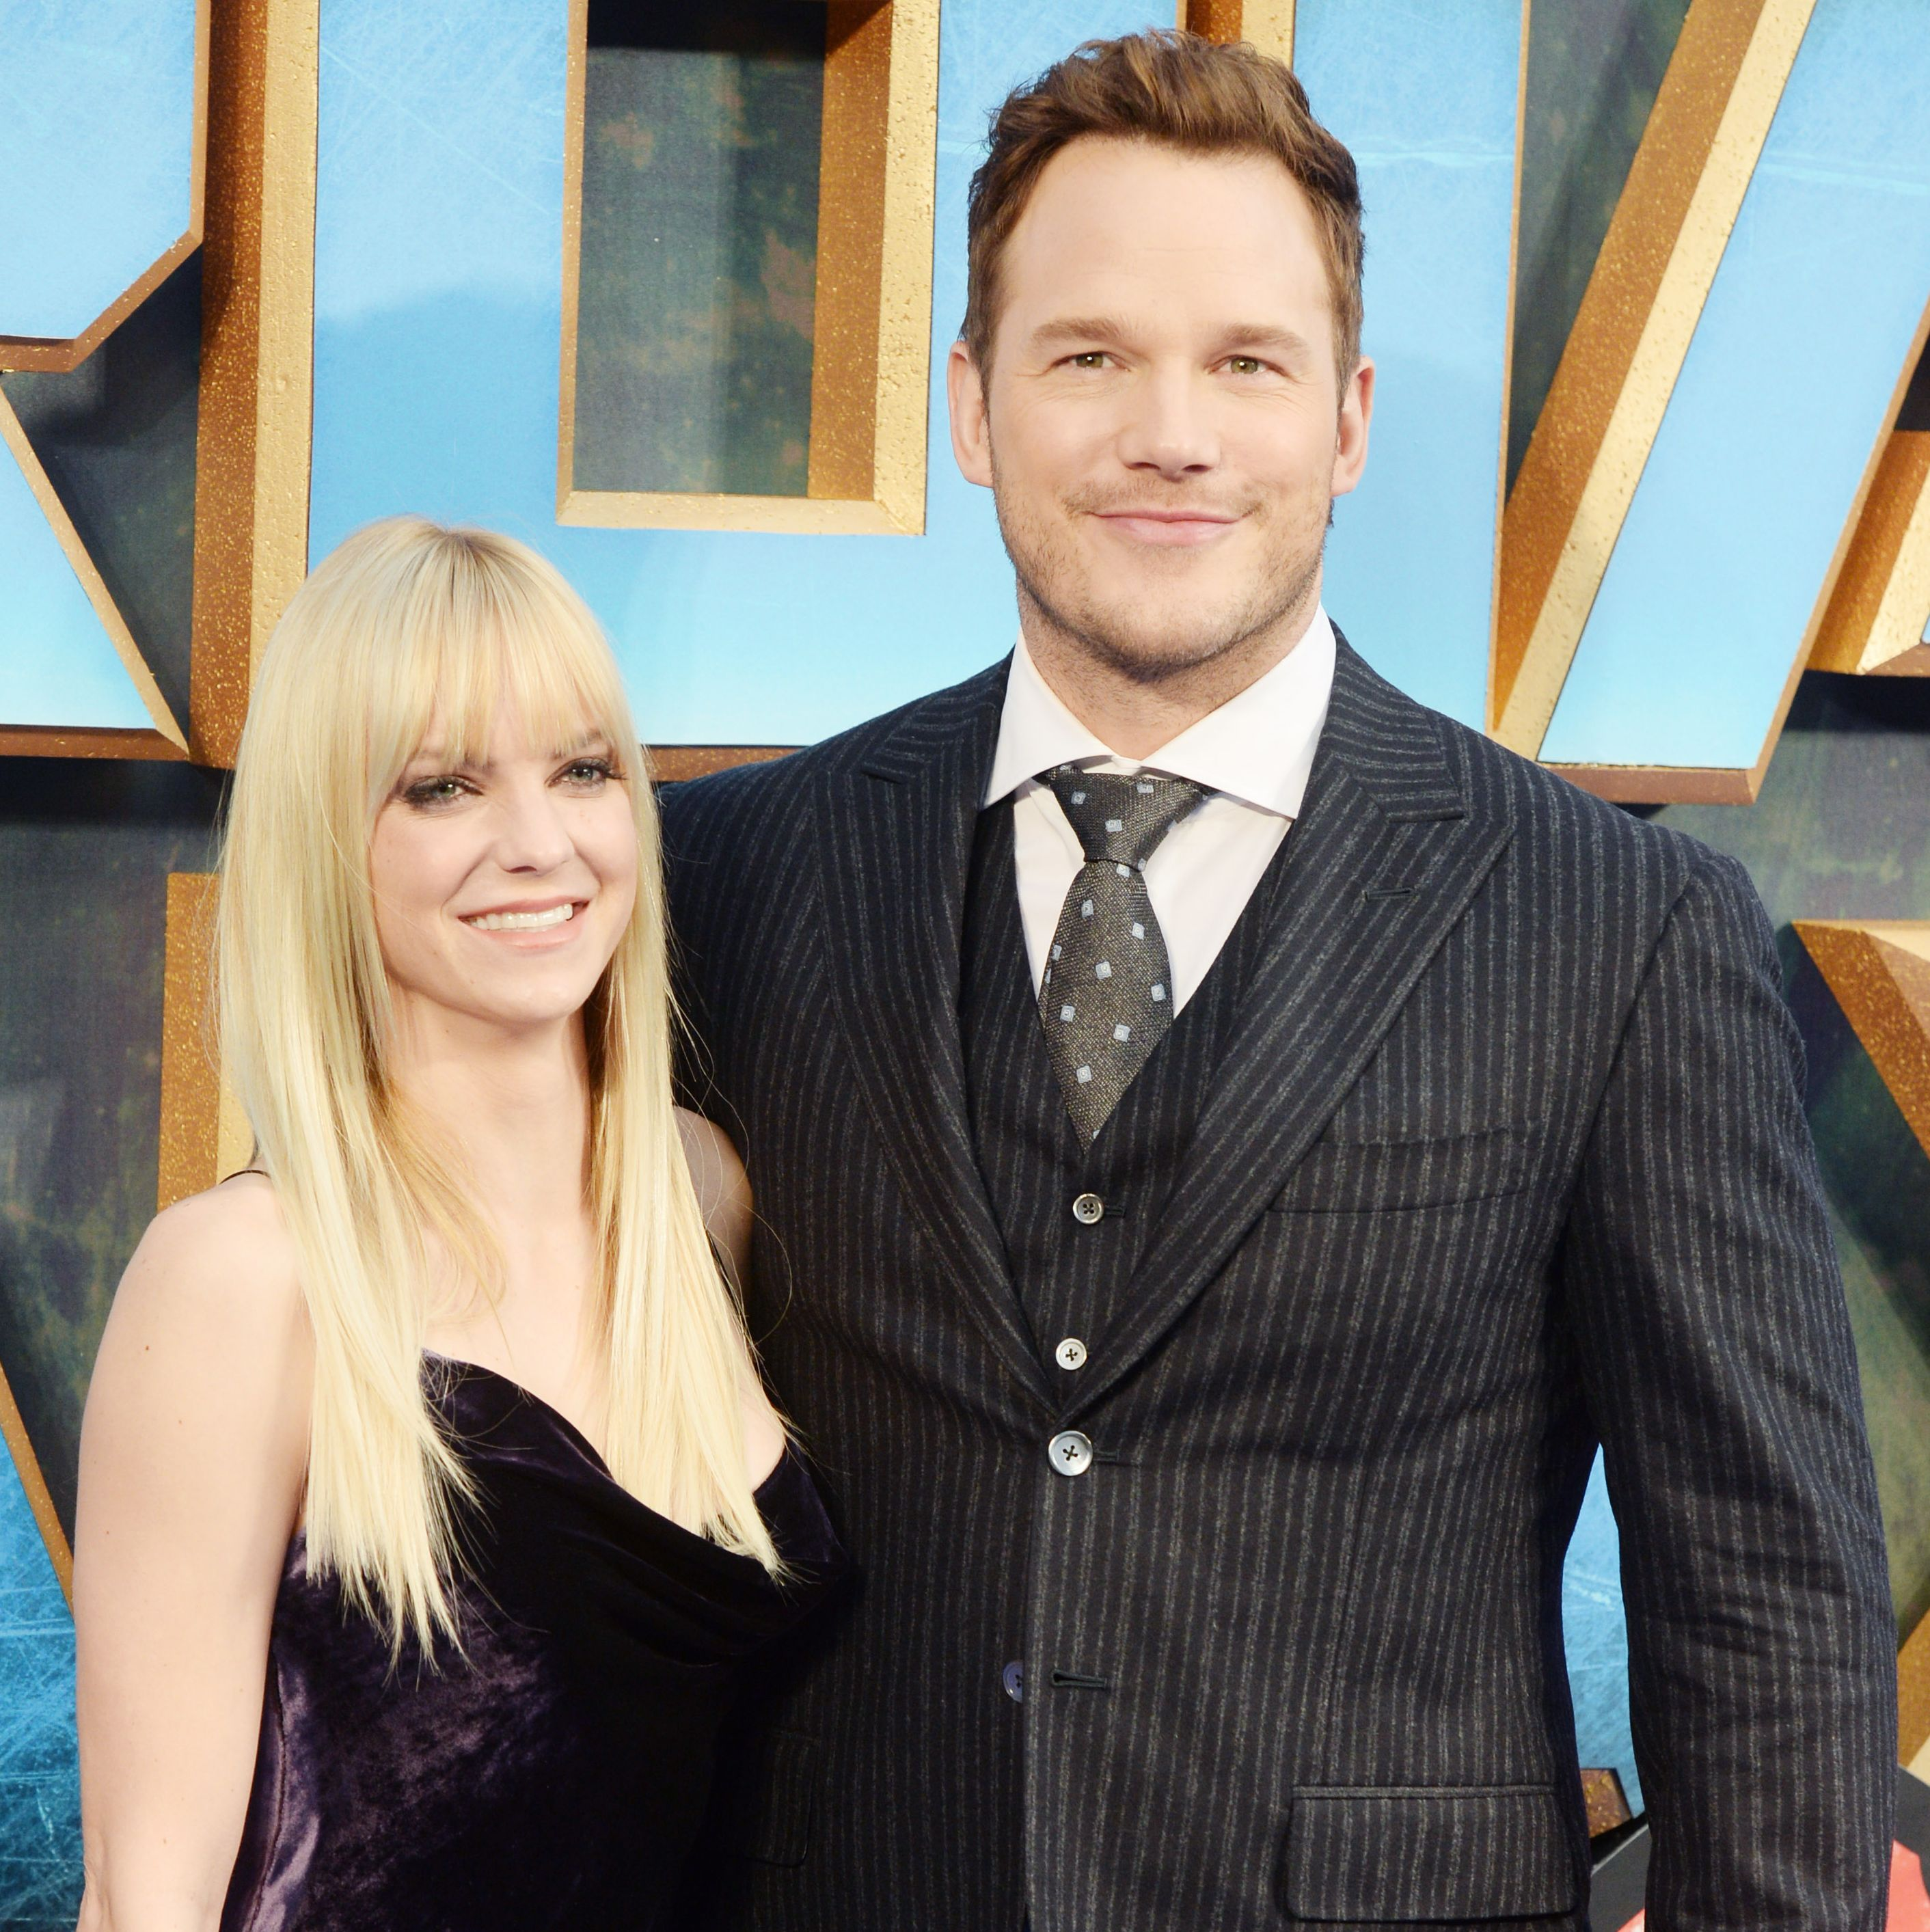 Anna Faris and Chris Pratt Anna and Chris met and fell in love on the set of the 2007 movie Take Me Home Tonight . The two eventually married, and fans loved how normal and relatable they were.